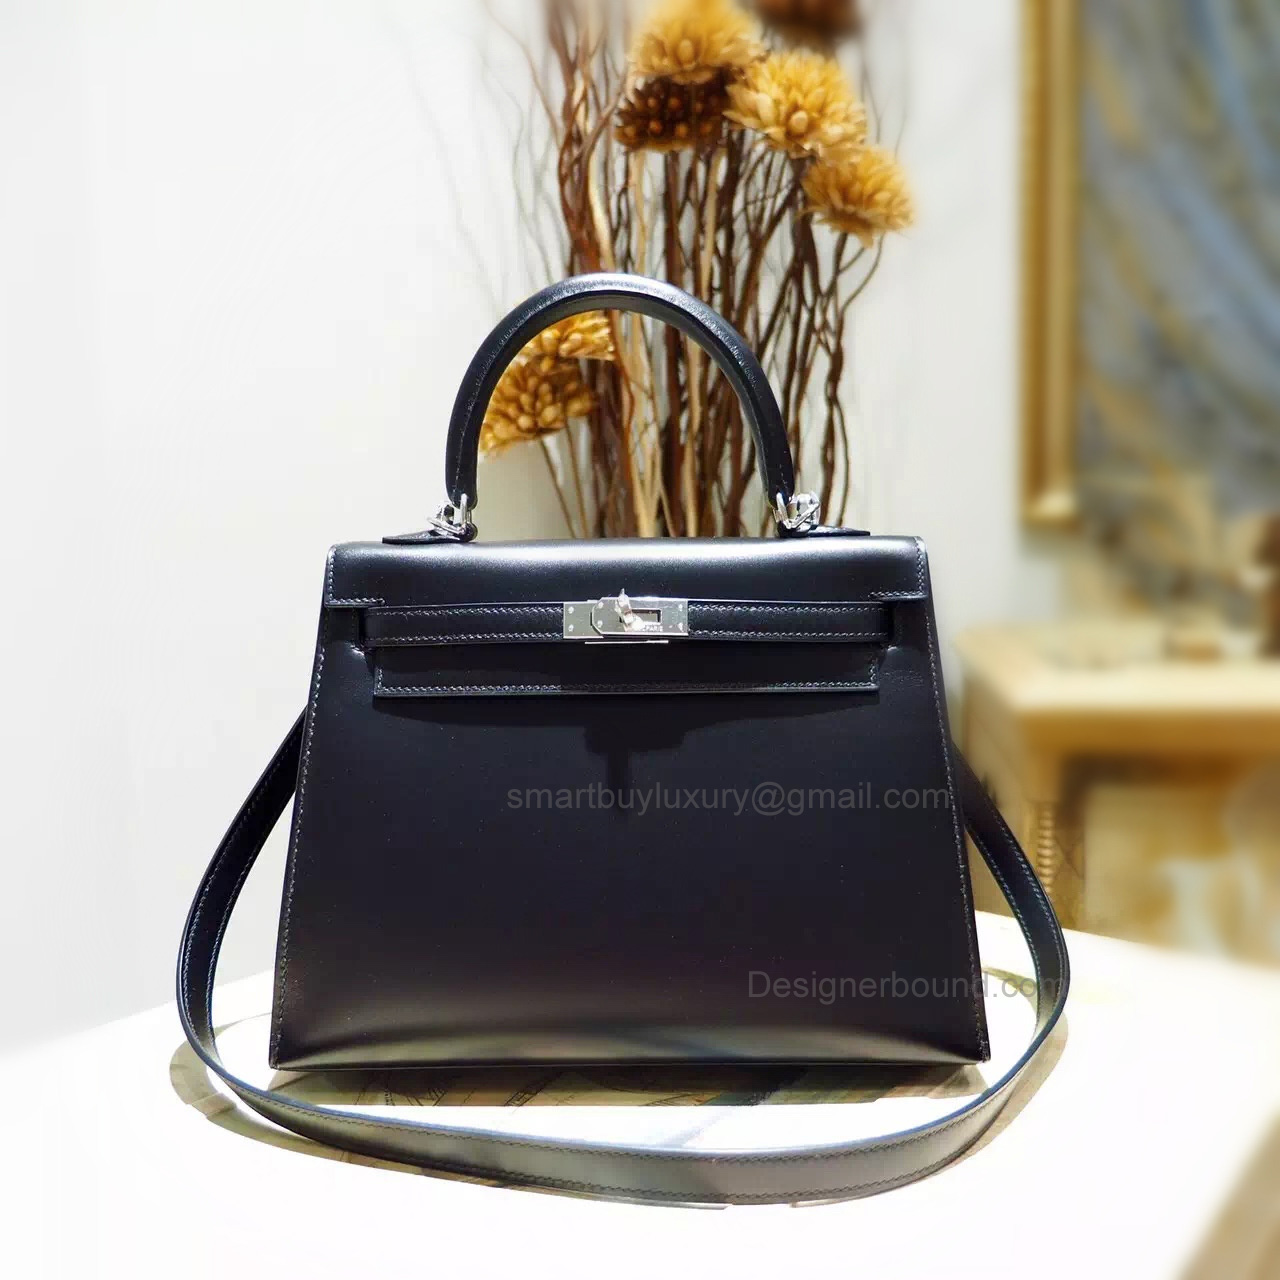 Knock Off Hermes Kelly 25 Hand Made Bag in ck89 Noir Box Calfskin SHW